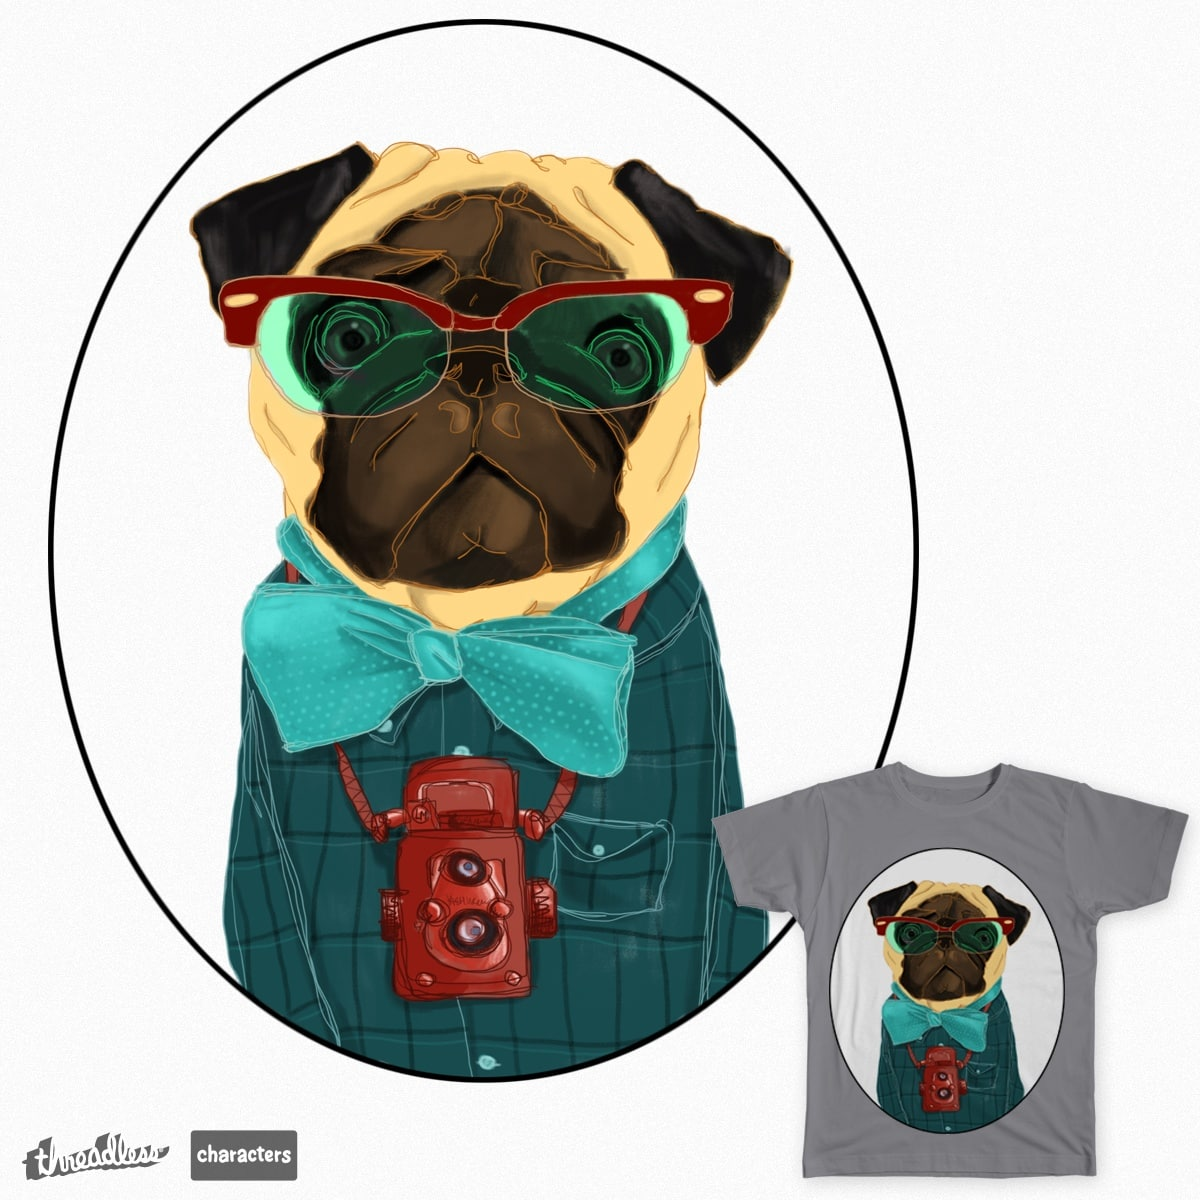 Hipster Pug by Parin on Threadless